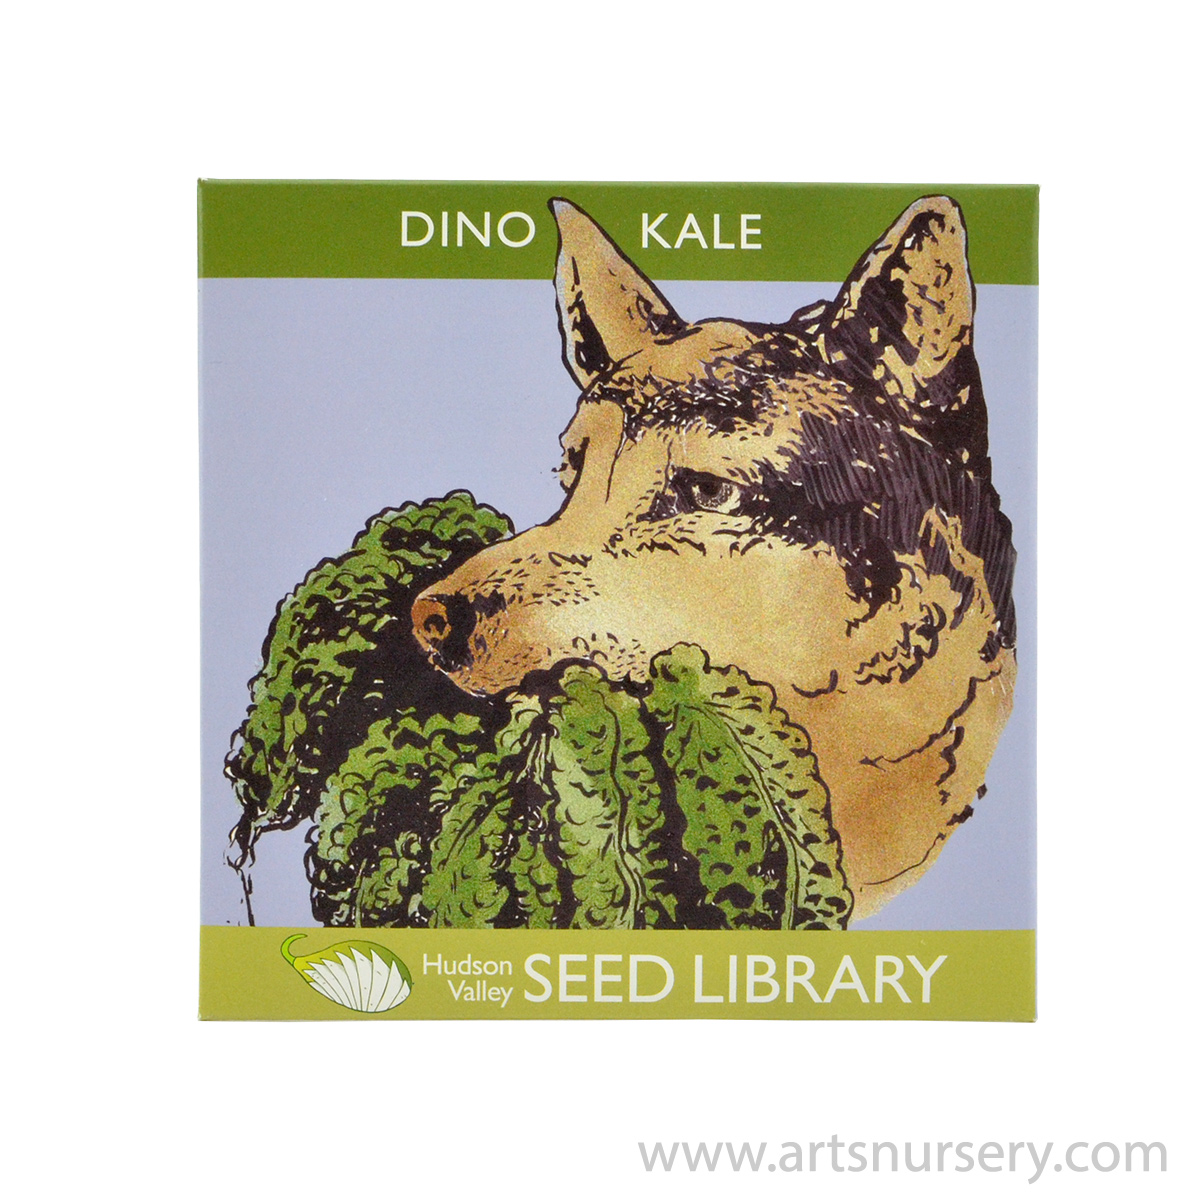 Dino Kale Hudson Valley Seed Library